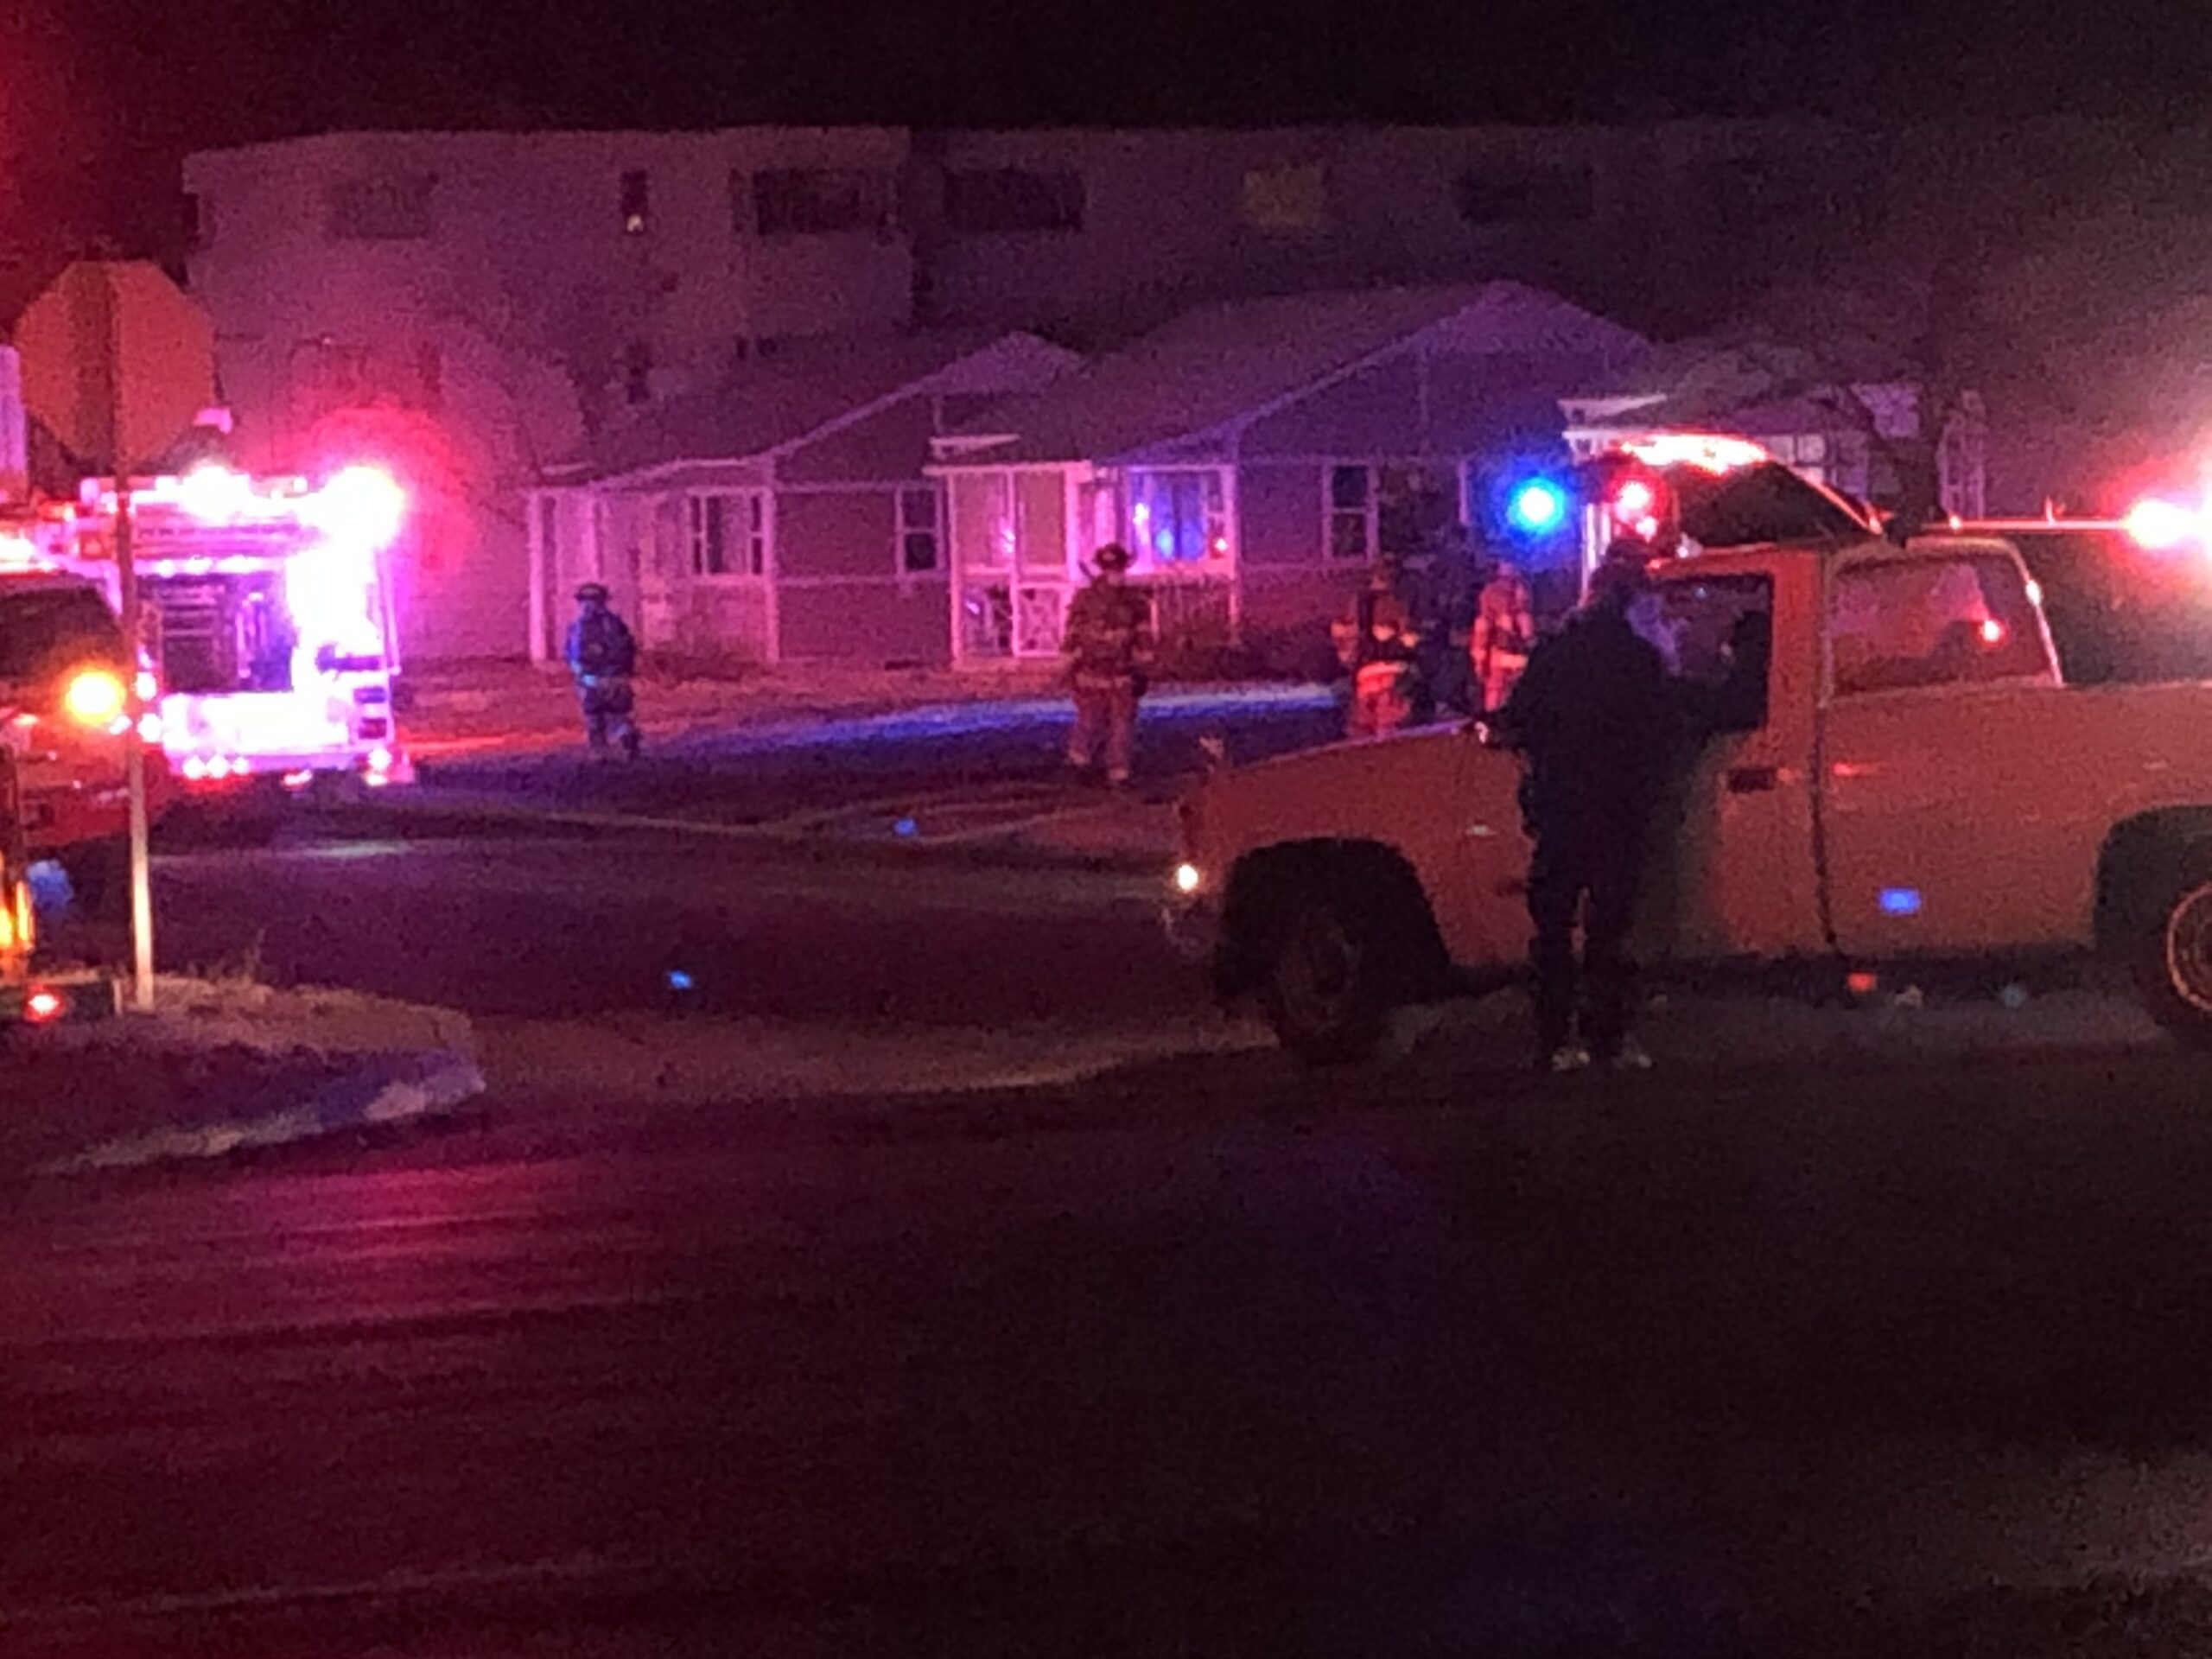 Colorado Springs fire crews responded to an overnight house fire on Tejon Street Monday.